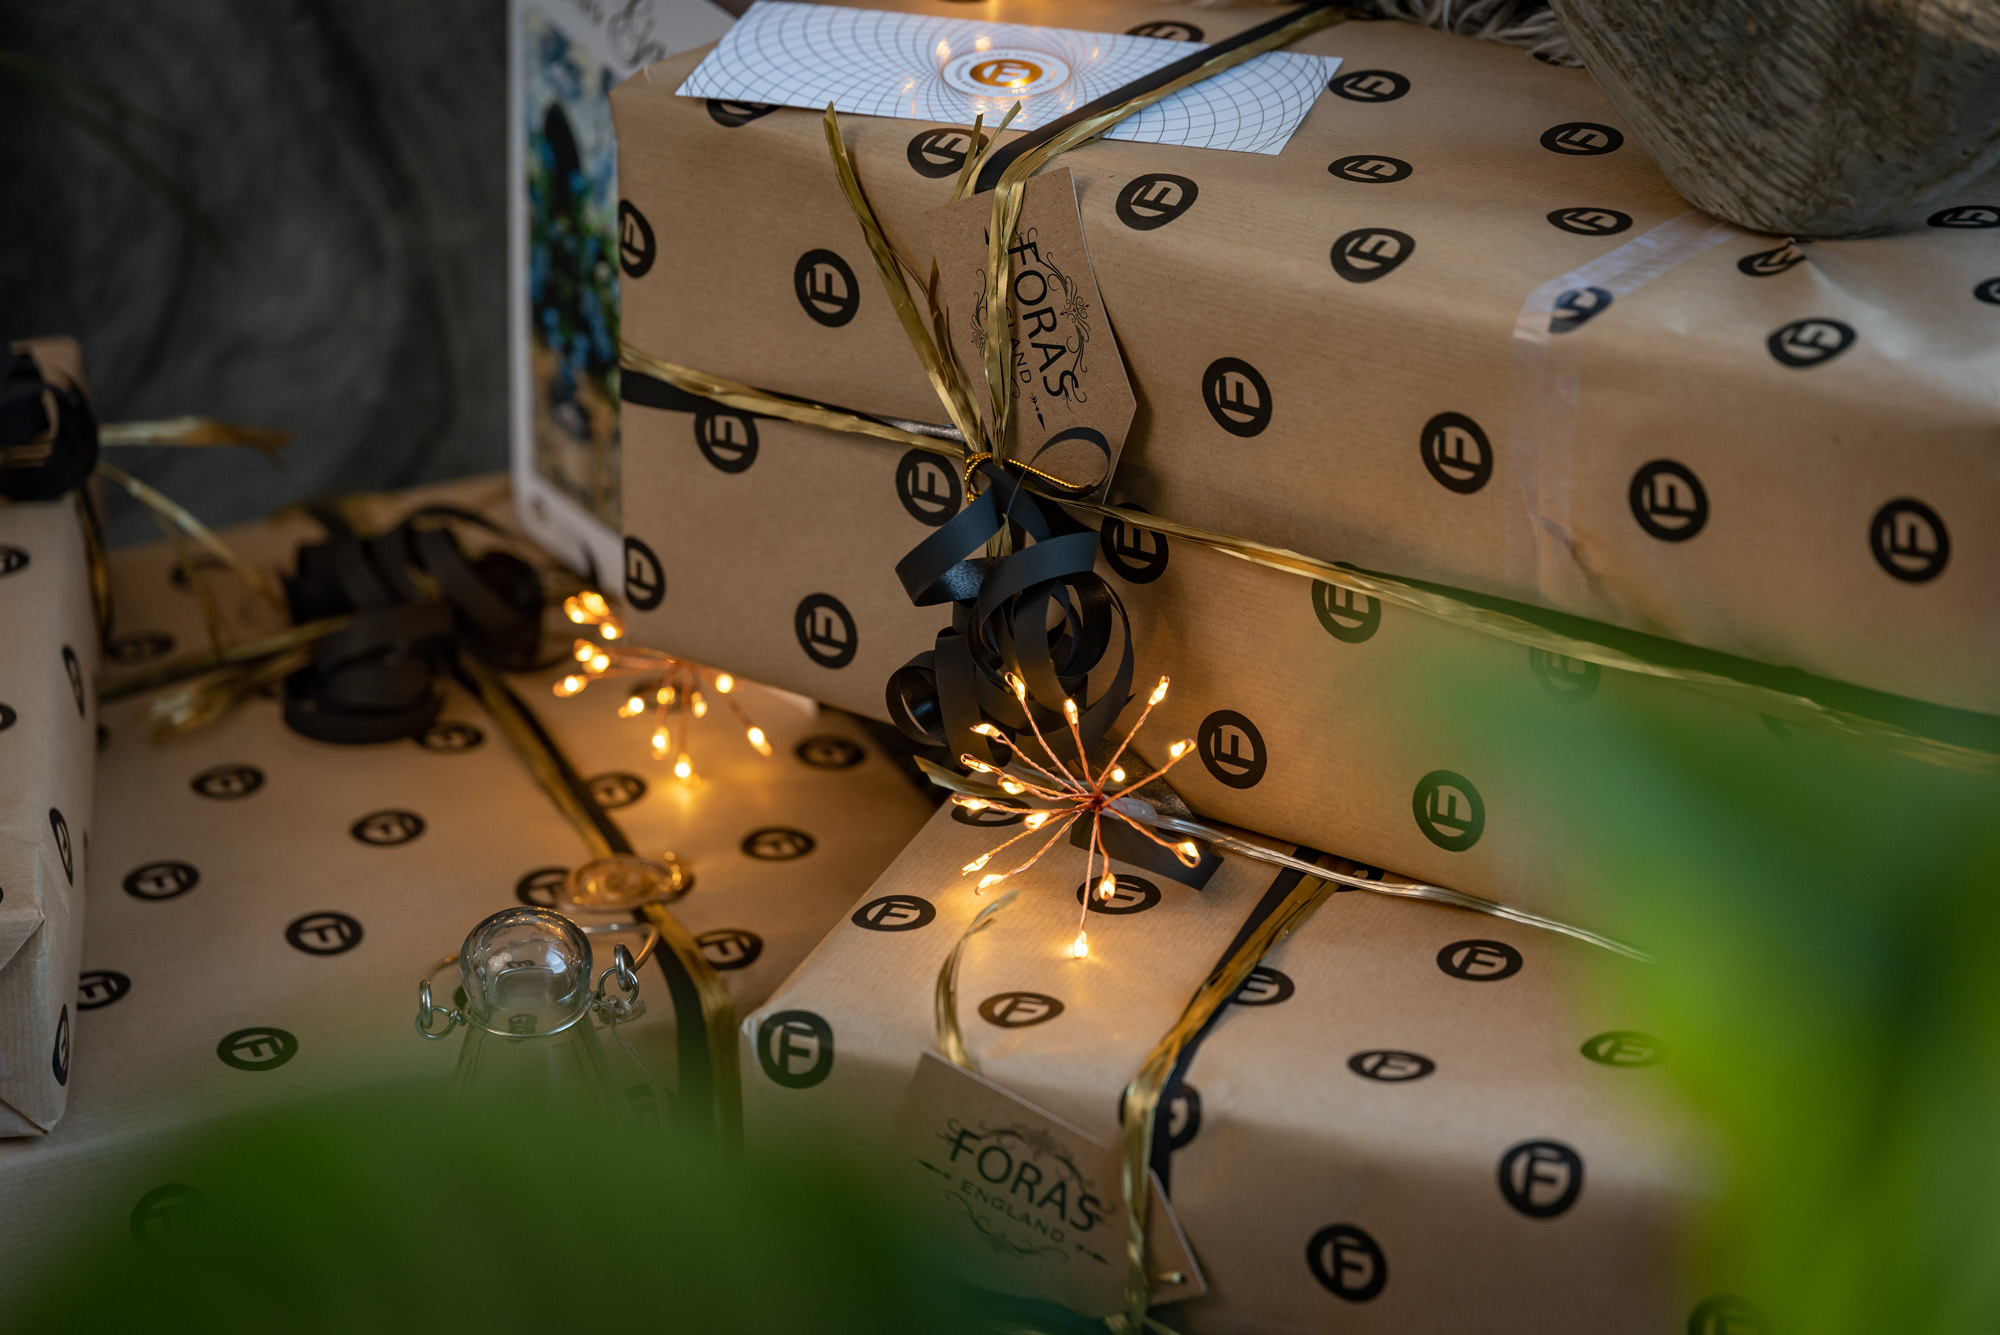 Foras gift wrapped boxes